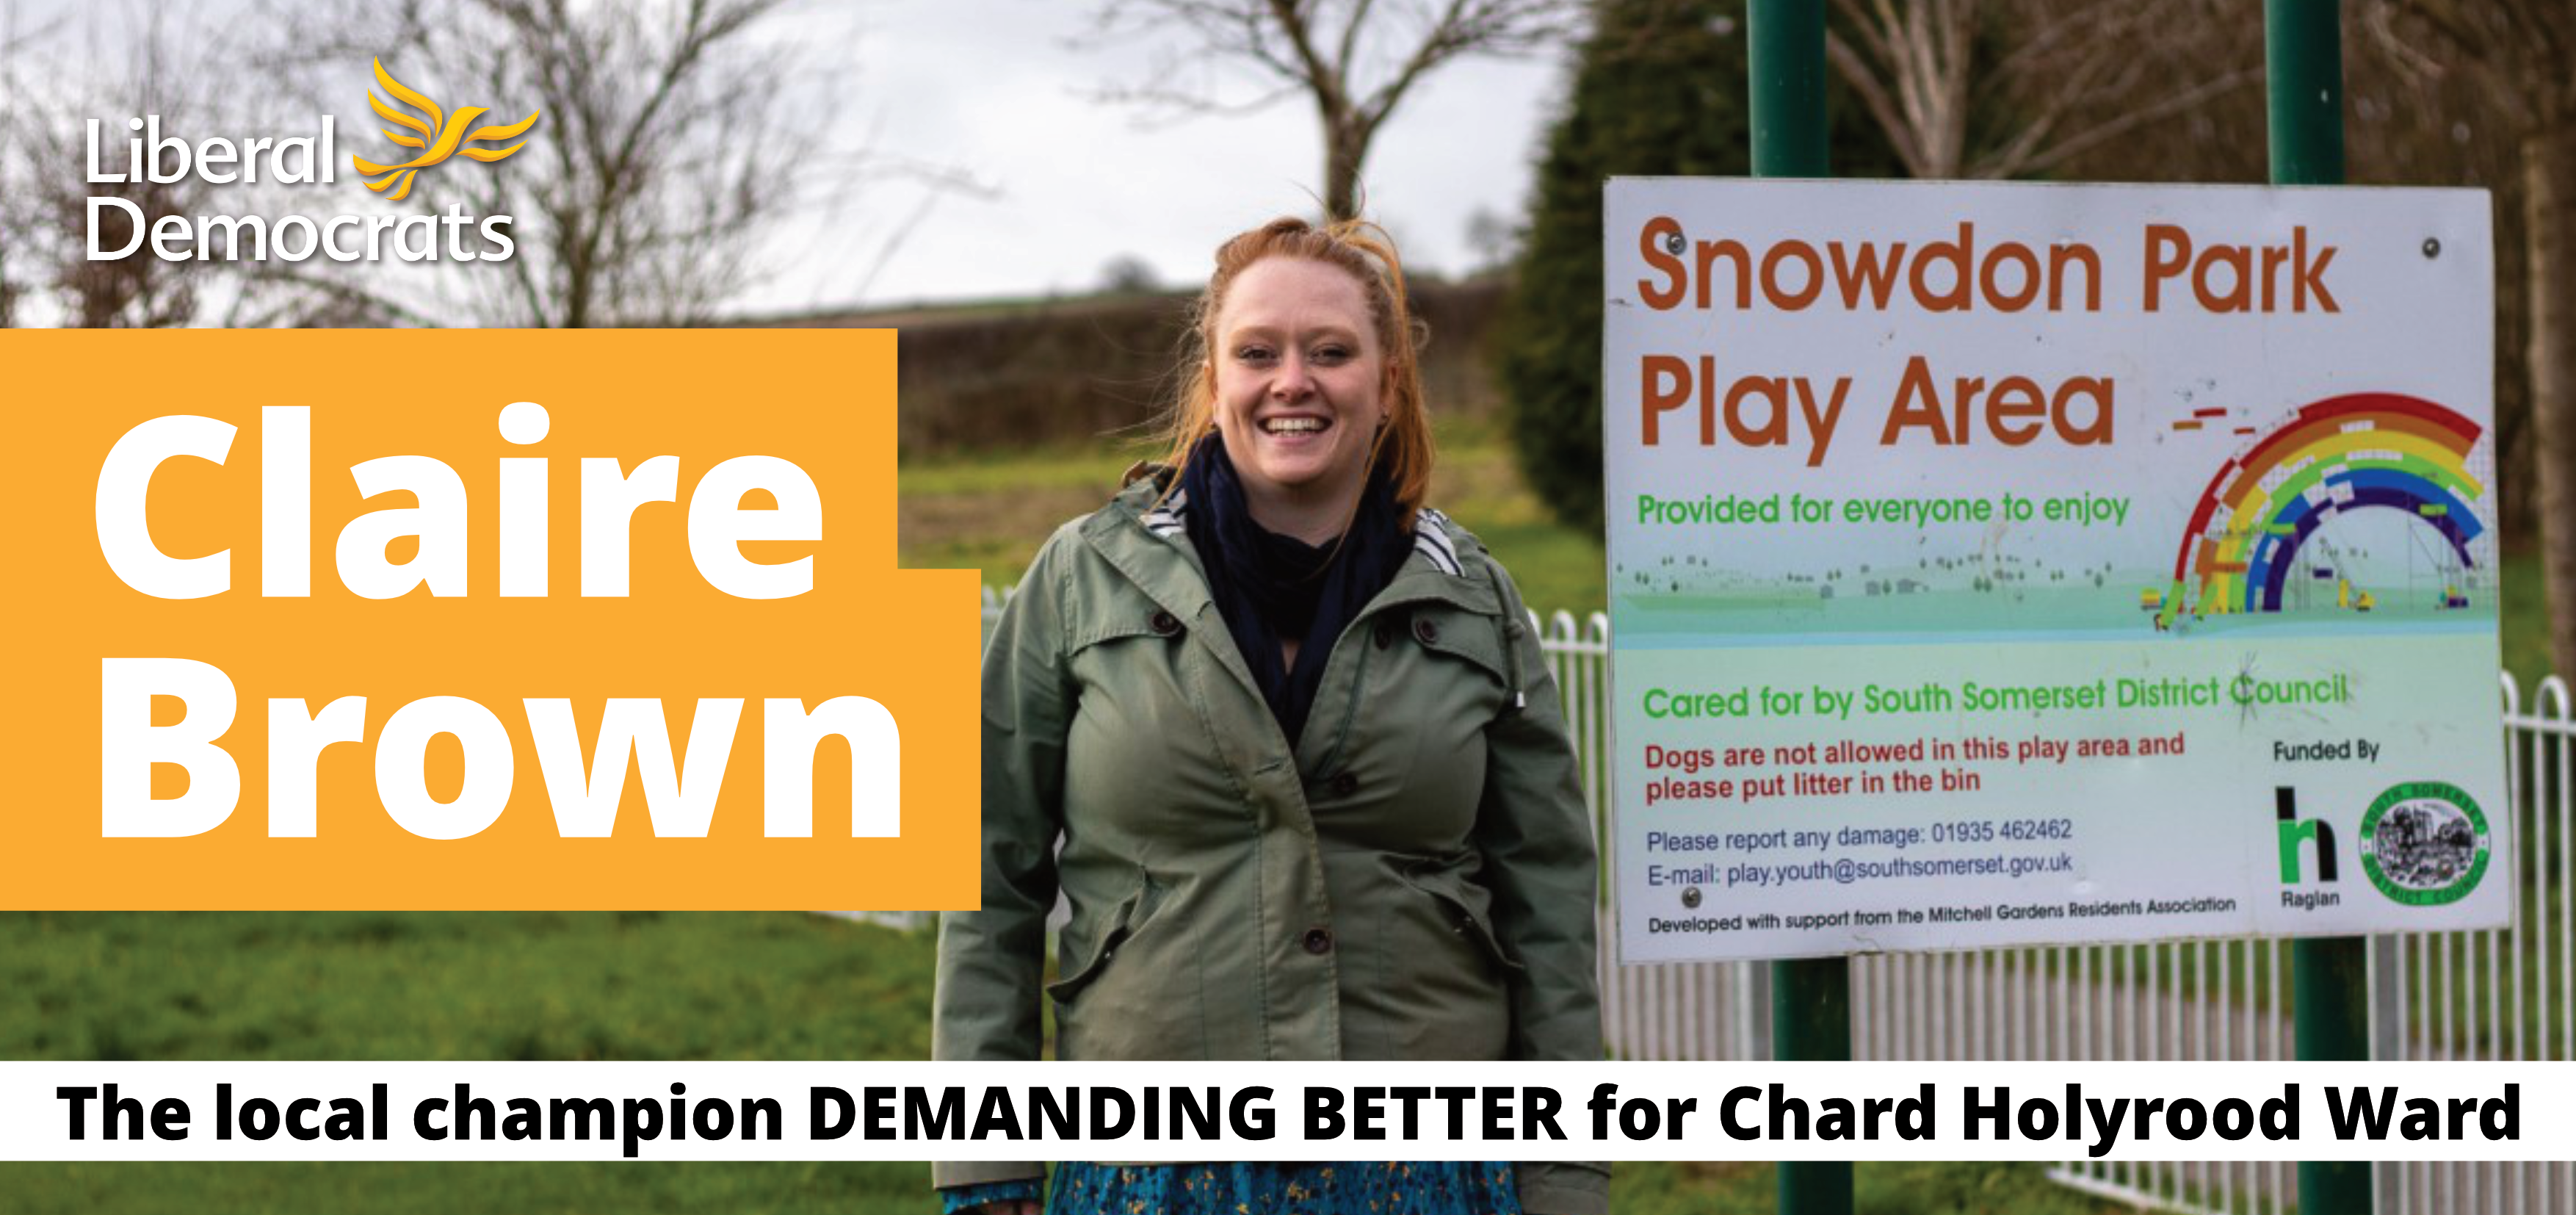 Claire Brown - The Local champion demanding better for Chard Holyrood Ward